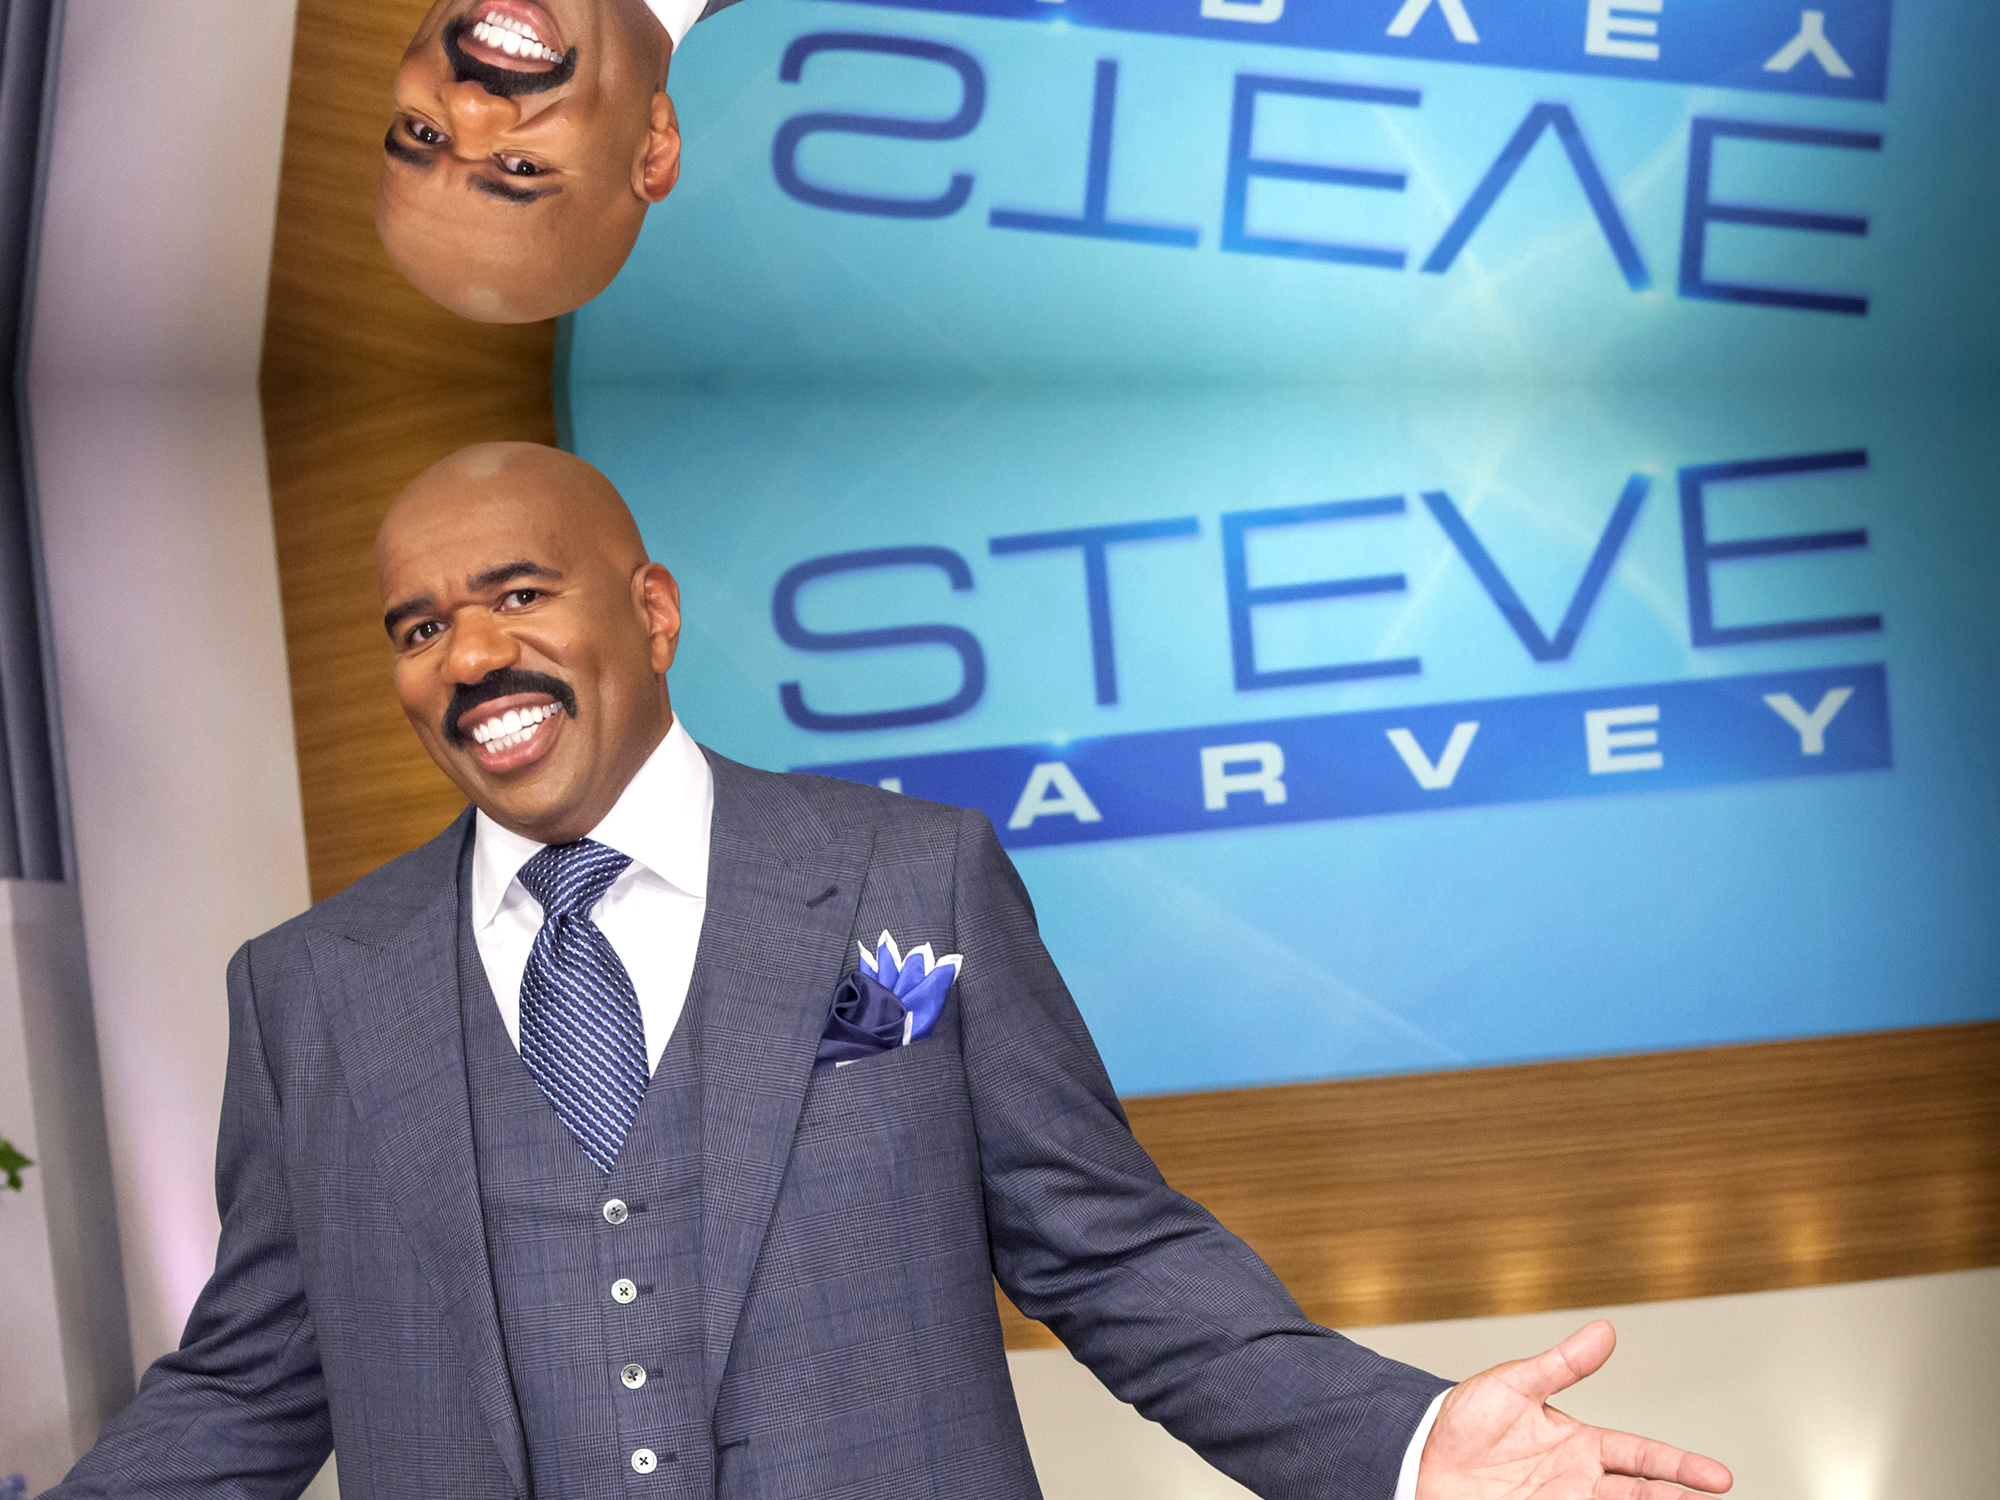 Steve Harvey Show Features eBook as Giveaway